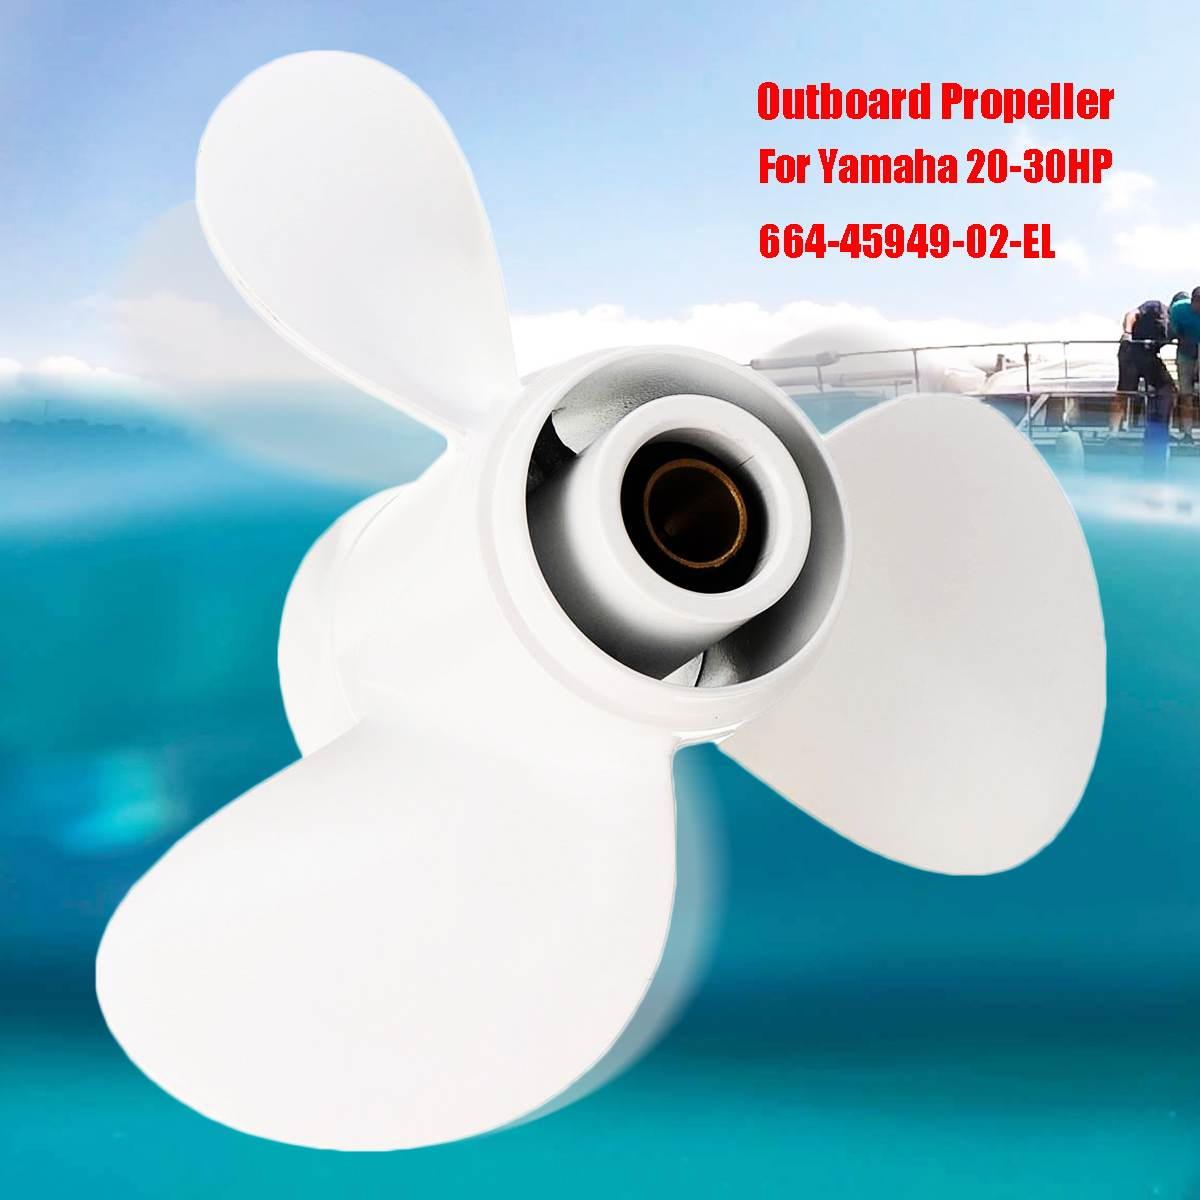 9 7//8 x 13 Boat Equipment Outboard Propeller For Yamaha 20-30HP 664-45949-02-EL